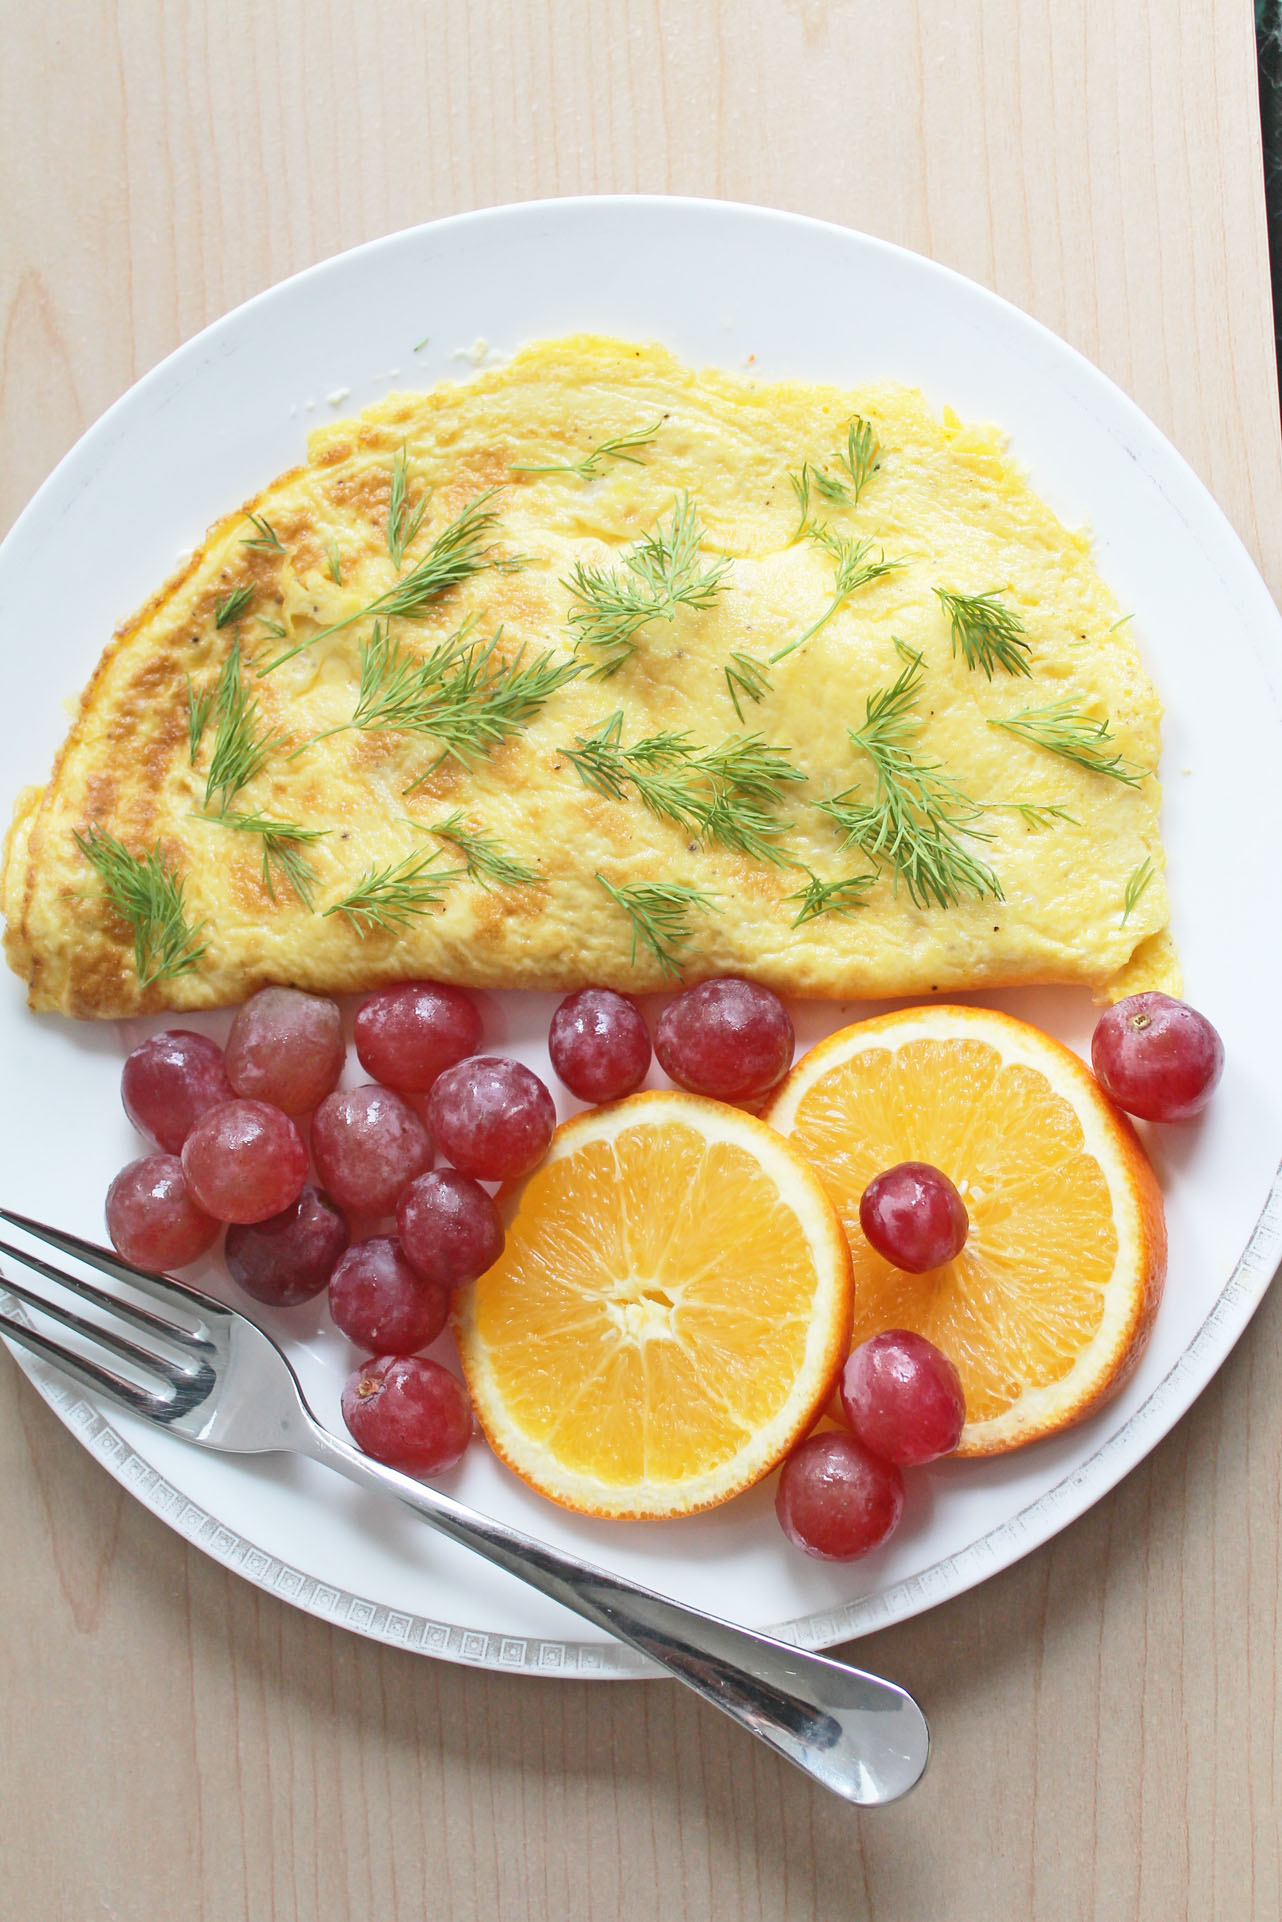 Healthy Breakfast Option: Shrimp-Salmon-Cream Cheese Omelette